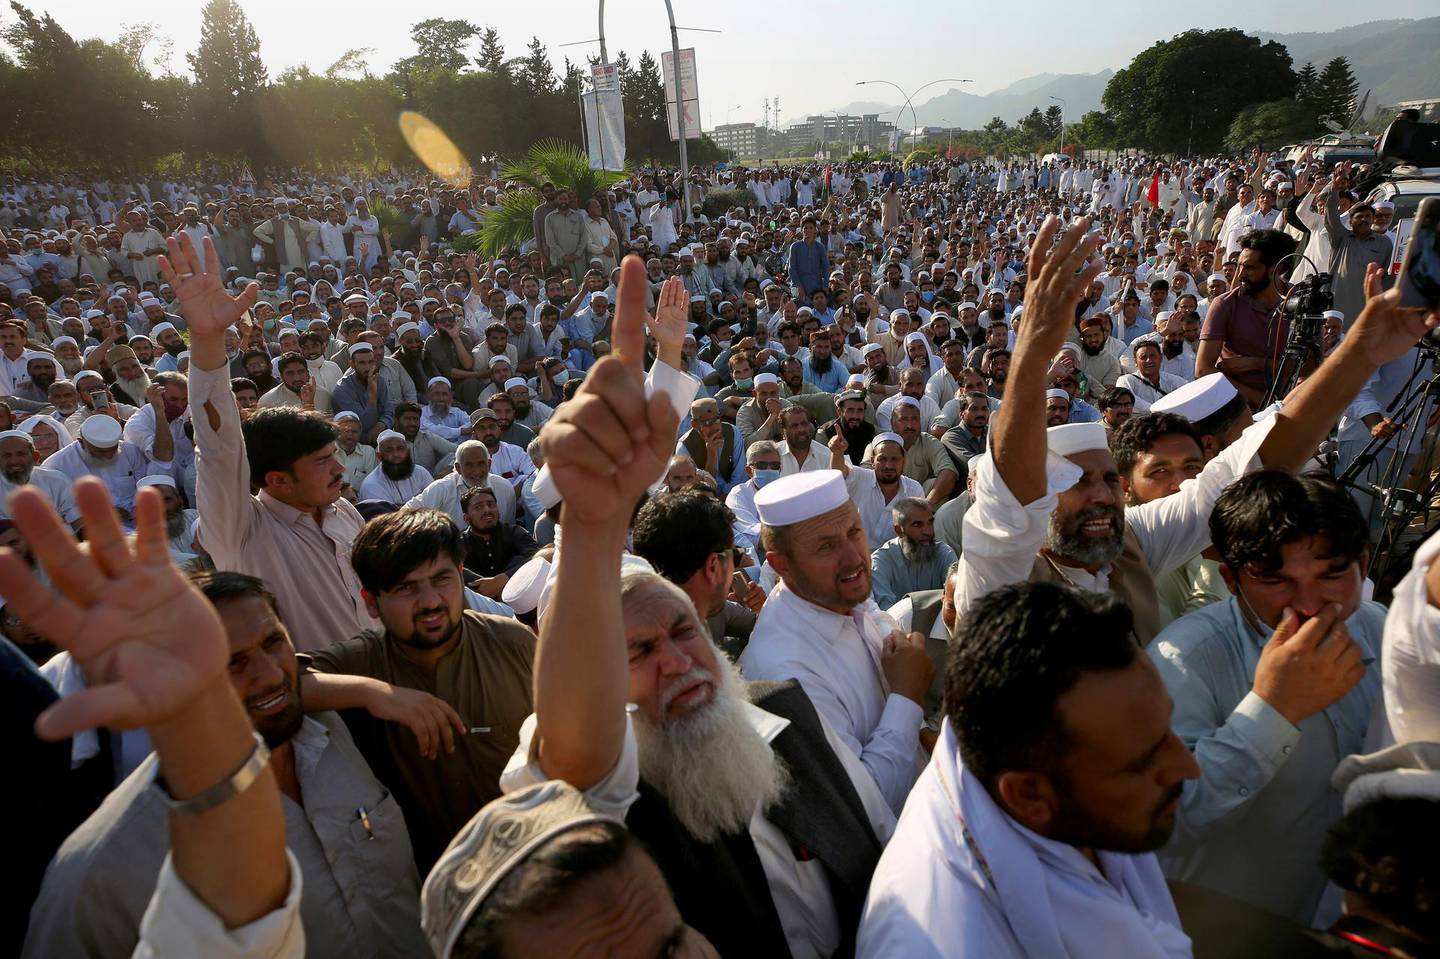 Thousands of government employees stage a sit-in protest in front of the parliament building demanding job regularization, increases in their salaries and other benefits, in Islamabad, Pakistan, Tuesday, Oct. 6, 2020. (AP Photo/Anjum Naveed)